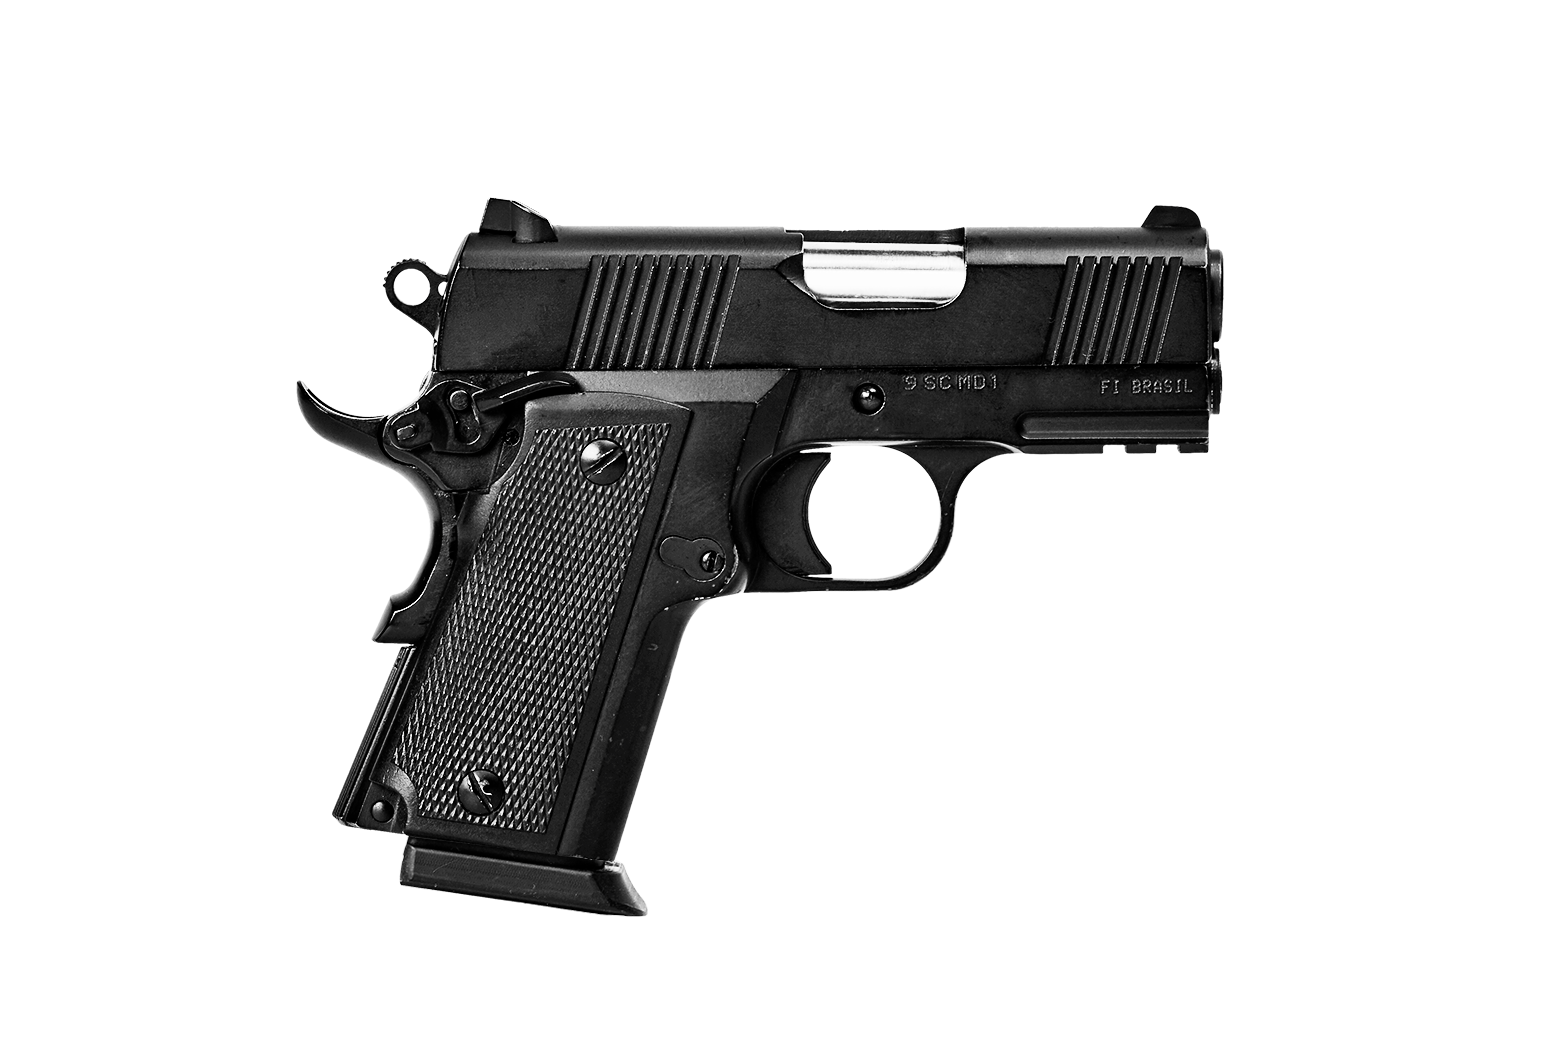 Pistola 9mm SC MD1 - Com extensor do carregador